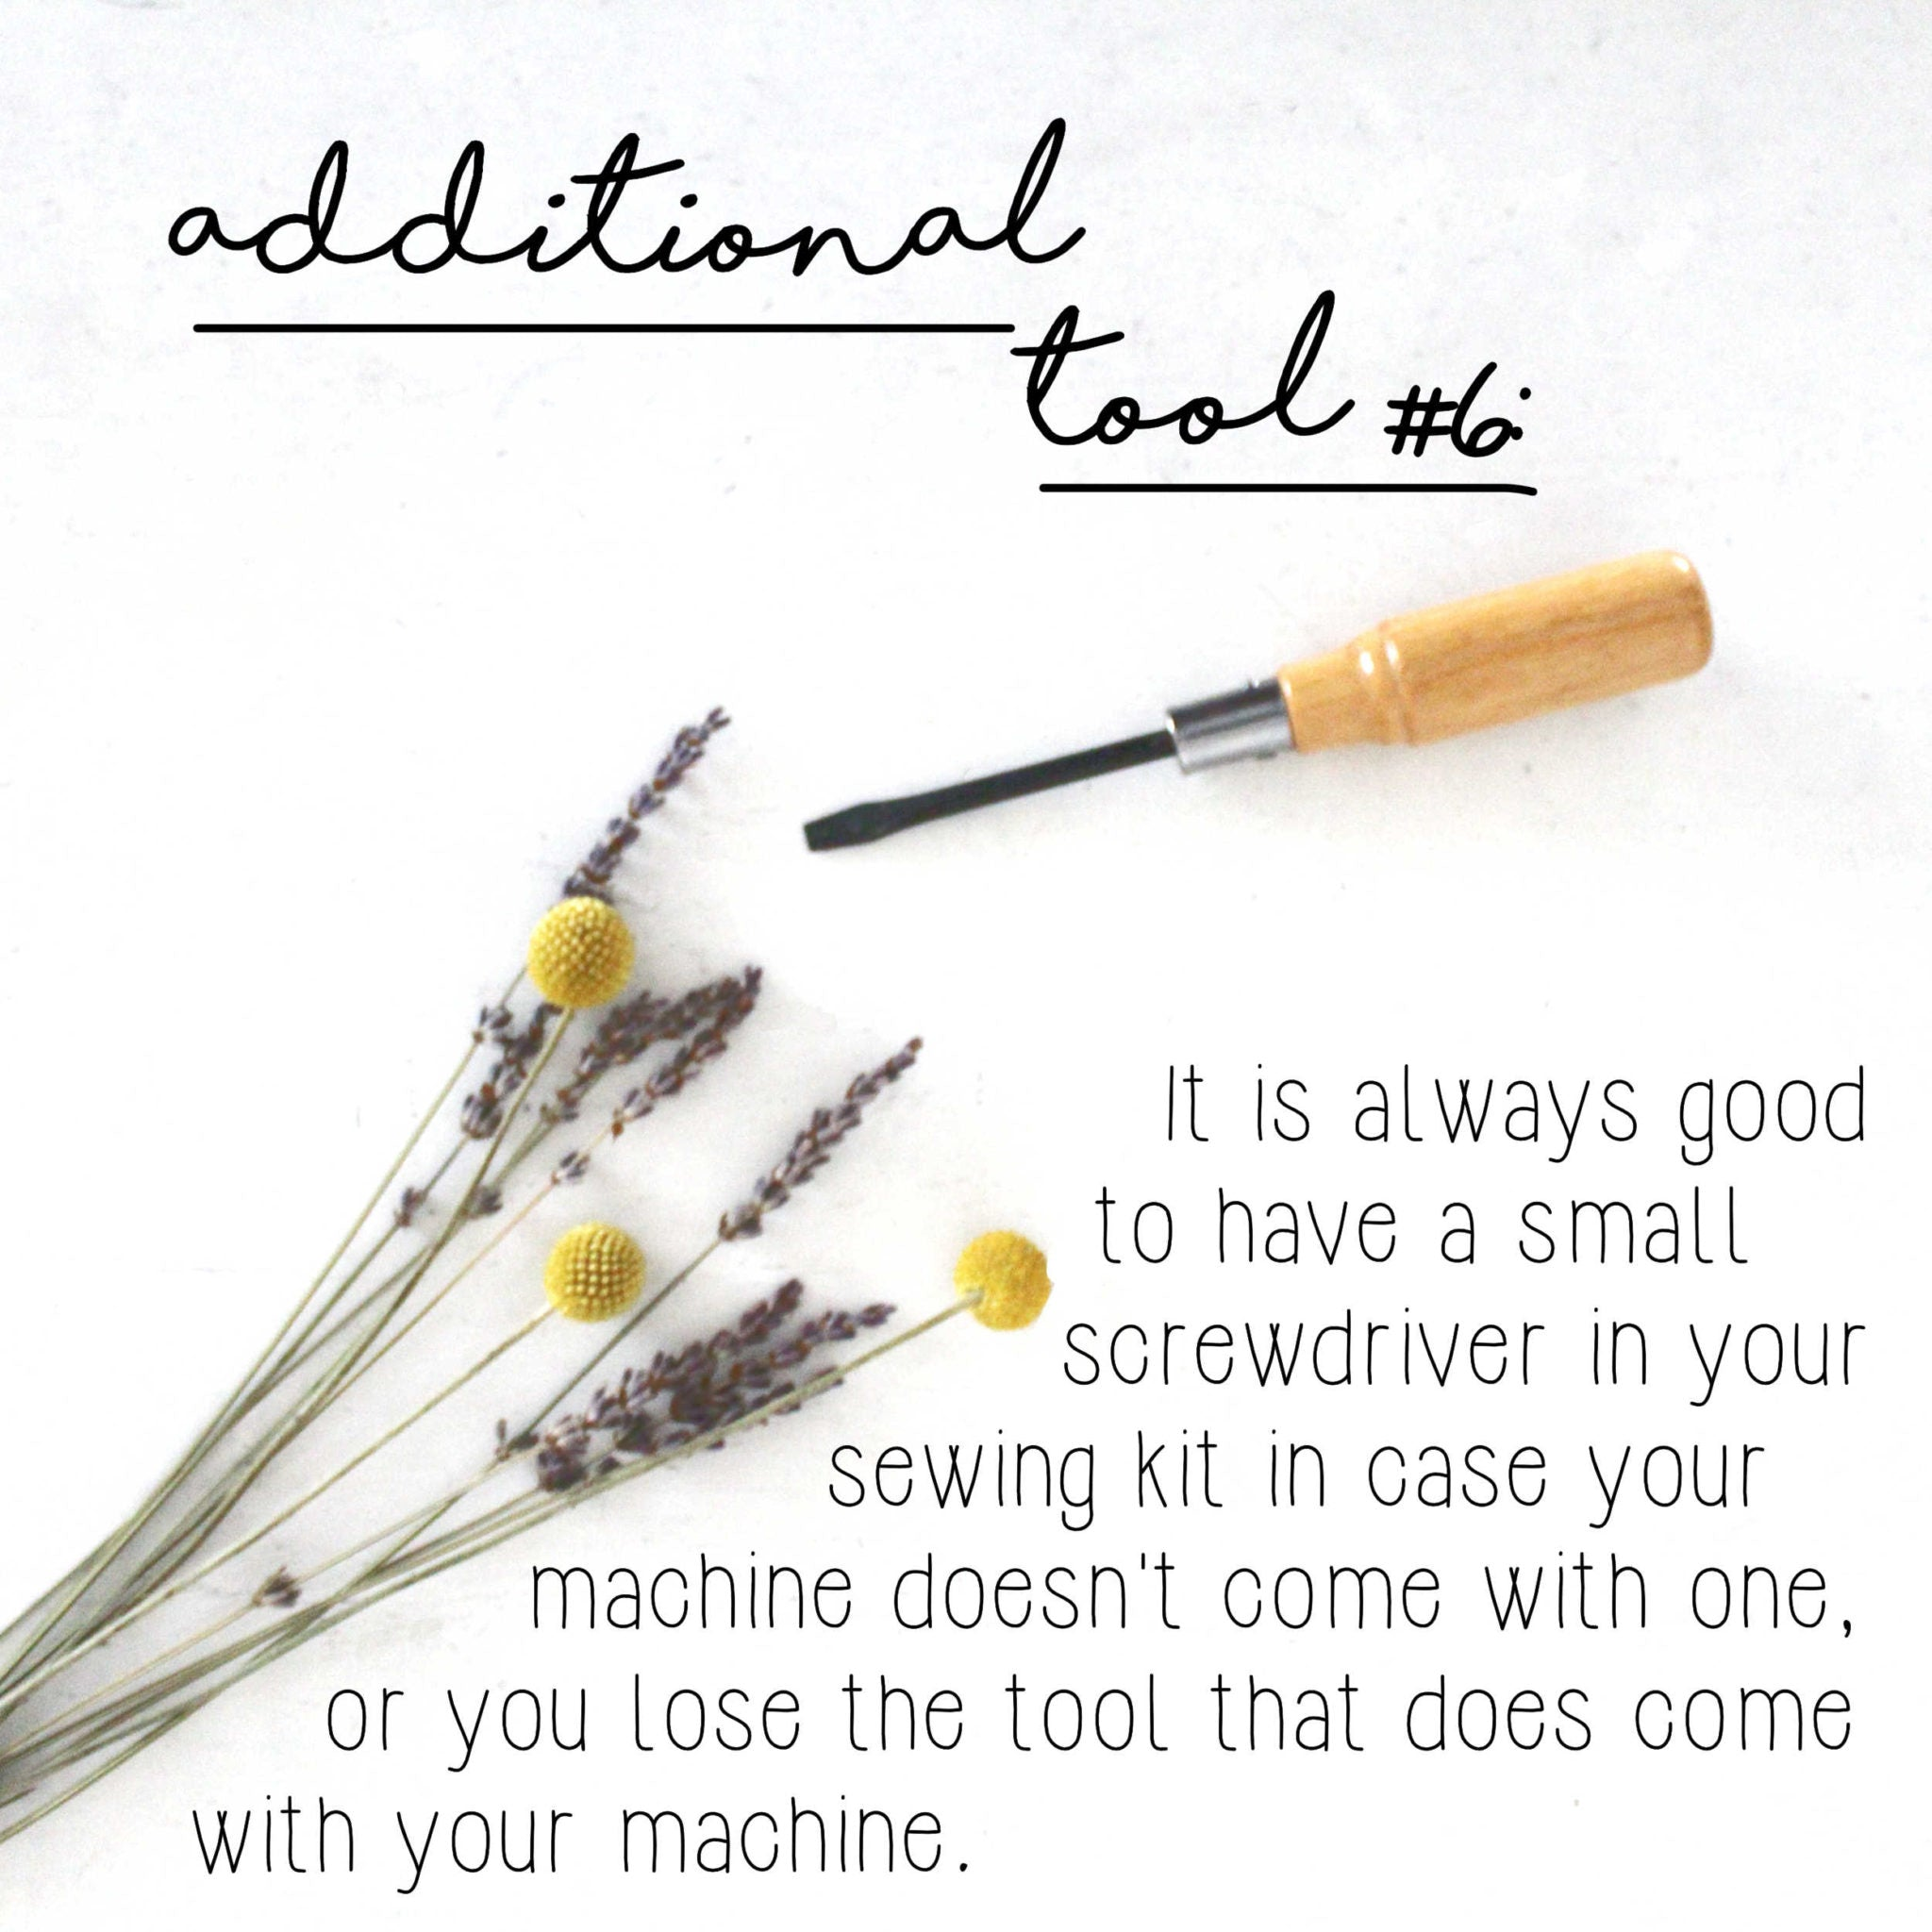 How To Build A Sewing Kit: Additional Tool #6, Flathead Screwdriver